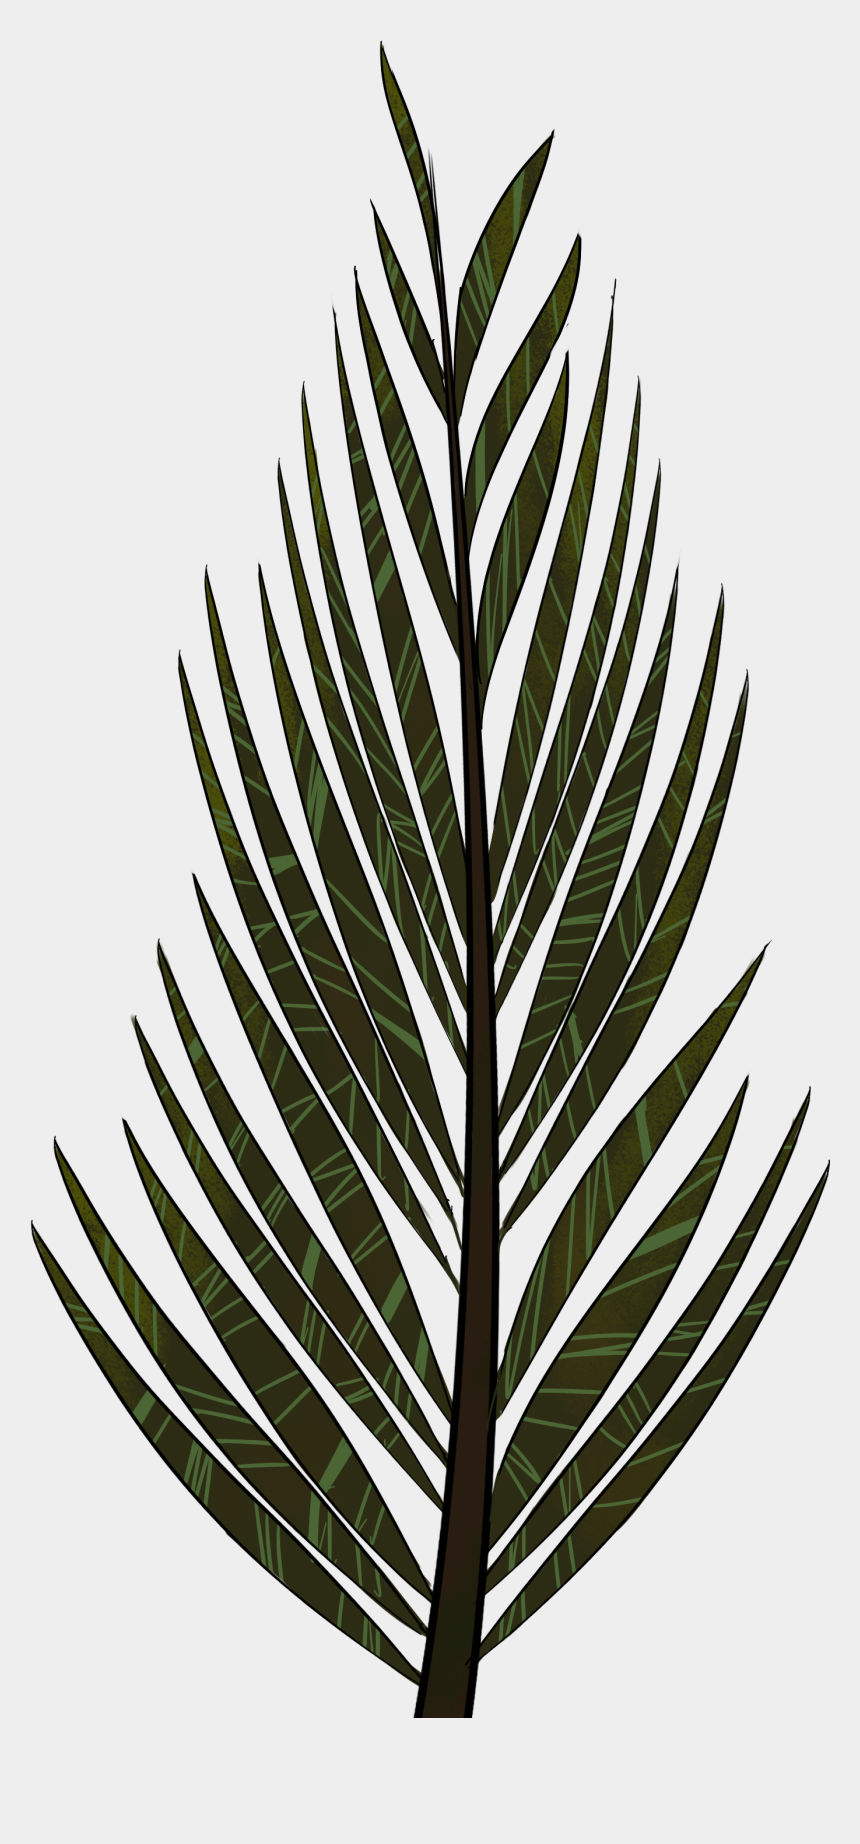 palm trees clipart, Cartoons - Pine Tree Clip Art Png - Pine Tree Leaves Drawing